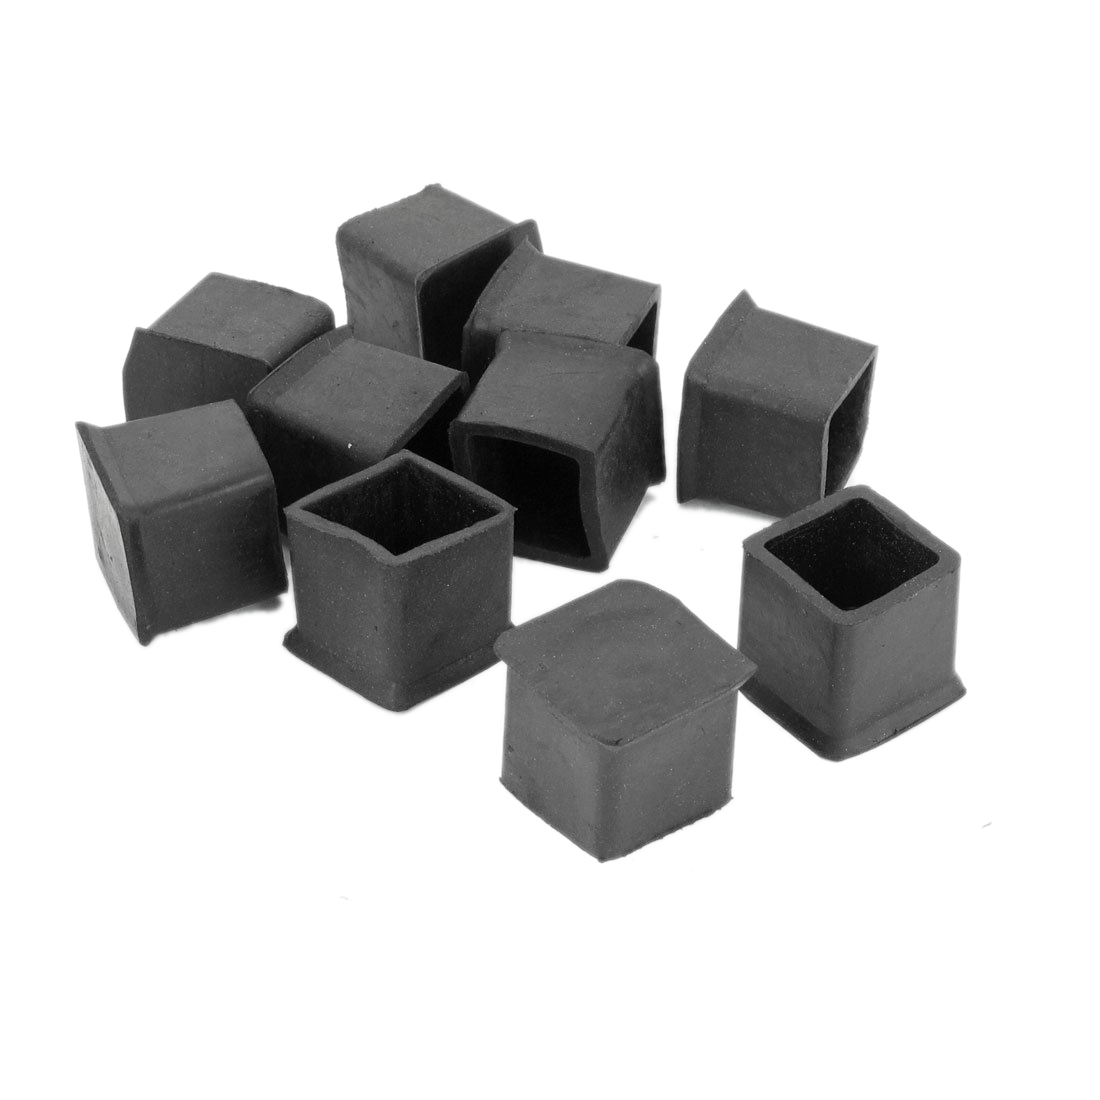 Practical 10 Pcs Black Rubber 25mm x 25mm Furniture Chair Legs Covers Protectors